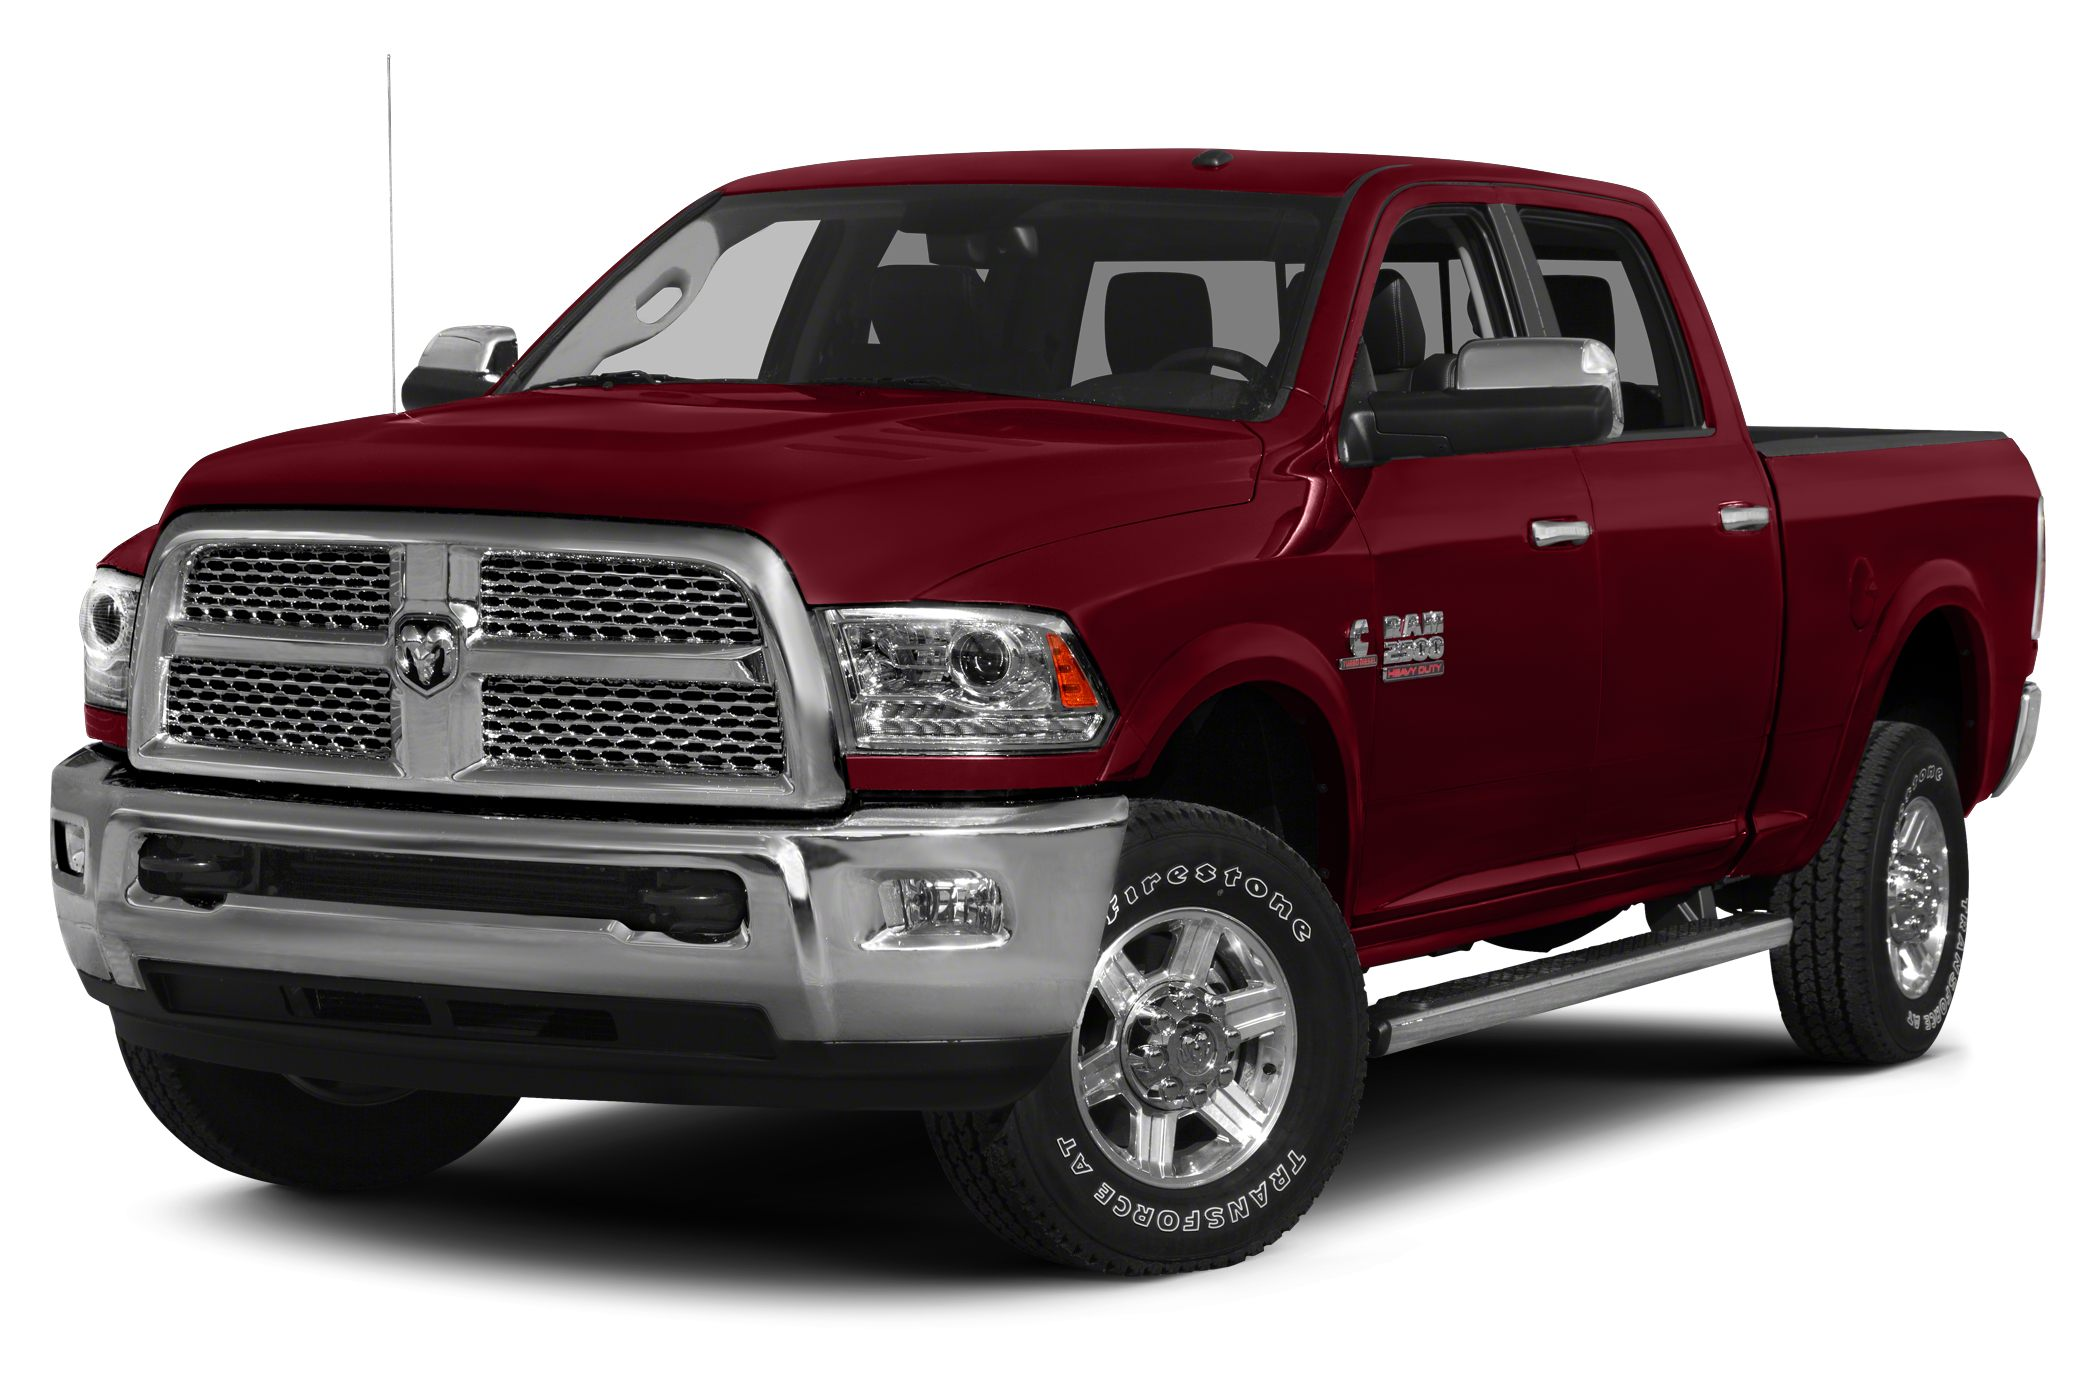 2013 RAM 3500